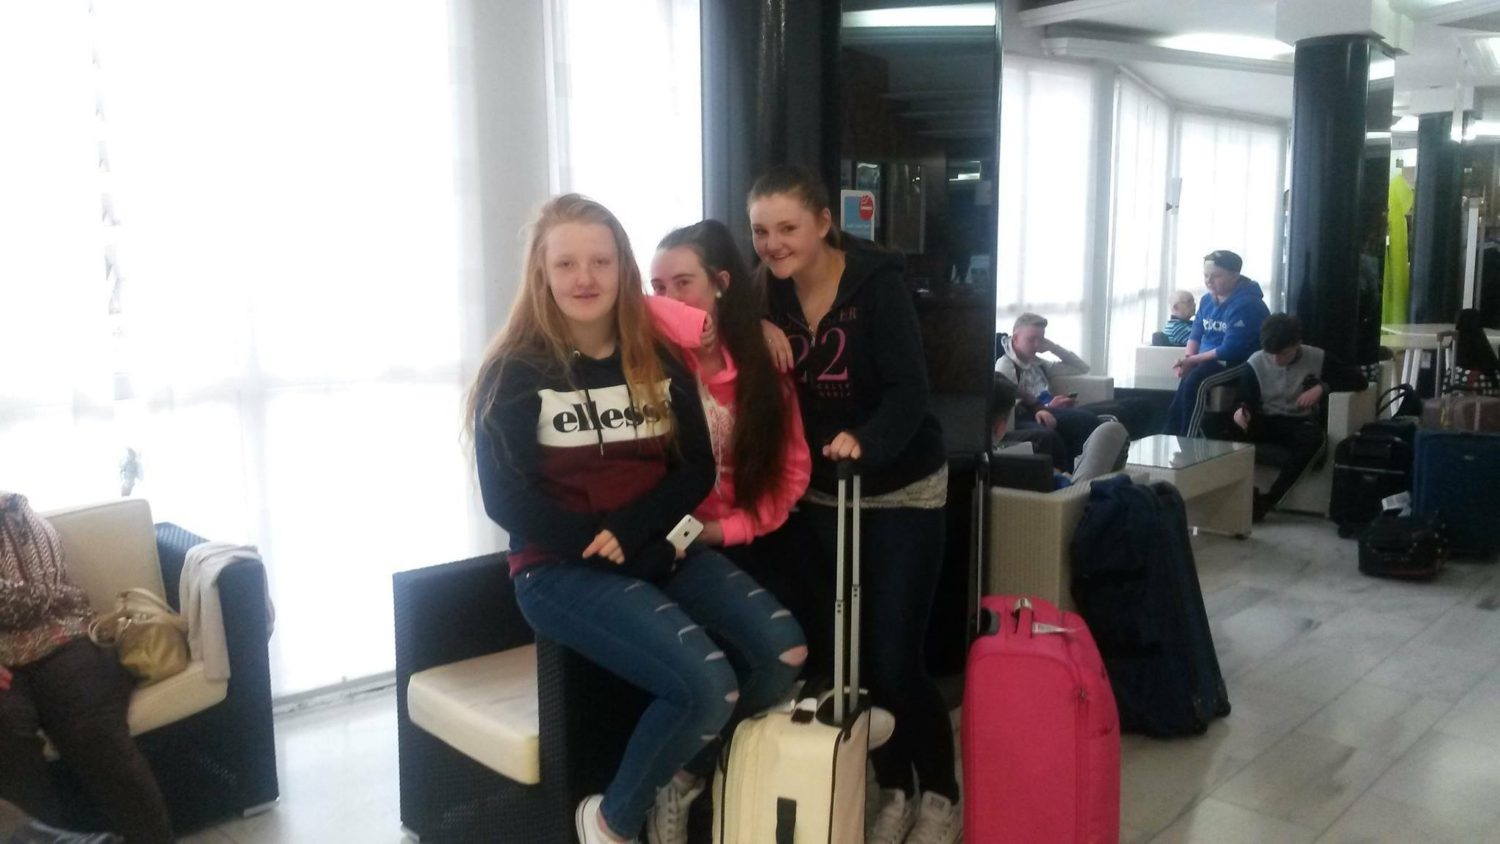 April 2016: Desmond College 2nd Year Students Tour to Barcelona